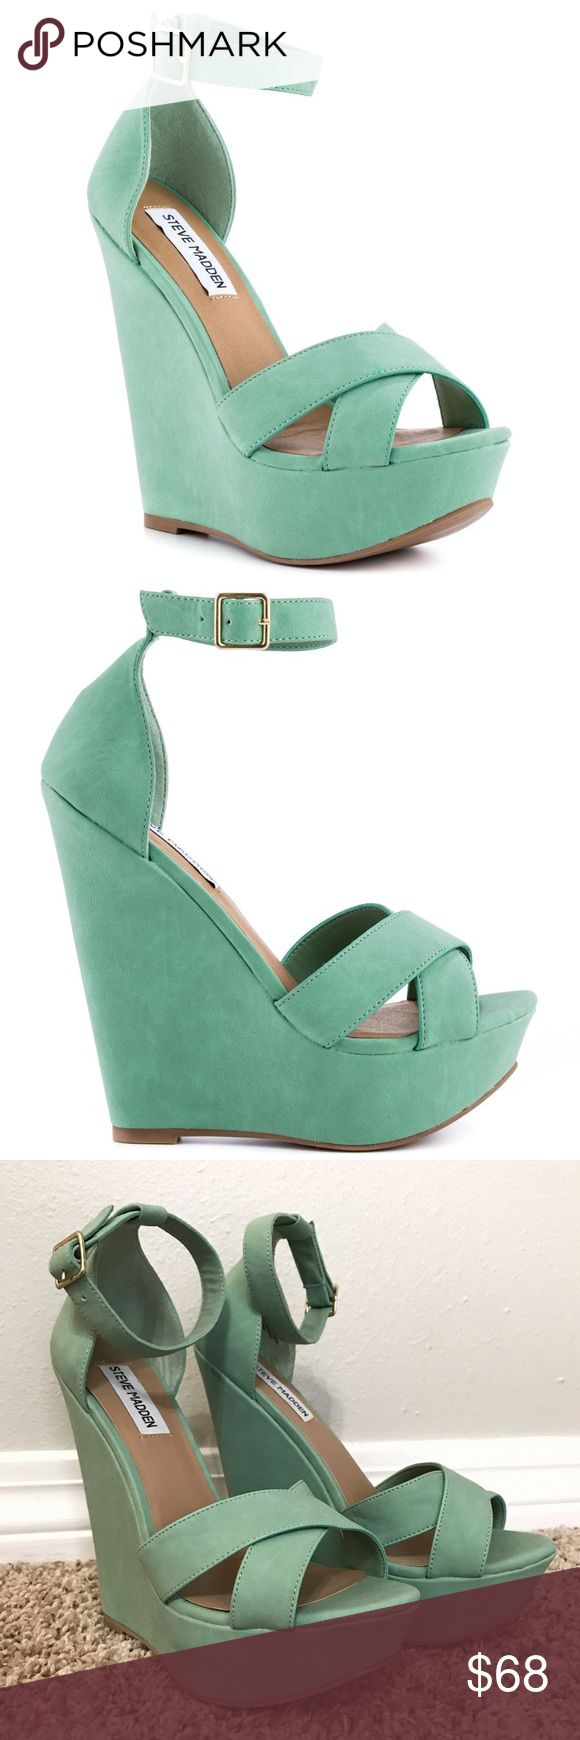 Steve Madden NEW 9.5 mint green wedge heels Never worn Steve Madden size 9.5 mint green wedge heels with adjustable ankle straps. In perfect condition, but without their original box. They are very pretty, but I have never been adventurous enough to wear them. I wear a size 9 in most brands but a 9.5 in this shoe. The total height from the floor to the bottom of the heel is 6 inches. These will make your calves look 👌🏼 Steve Madden Shoes Wedges